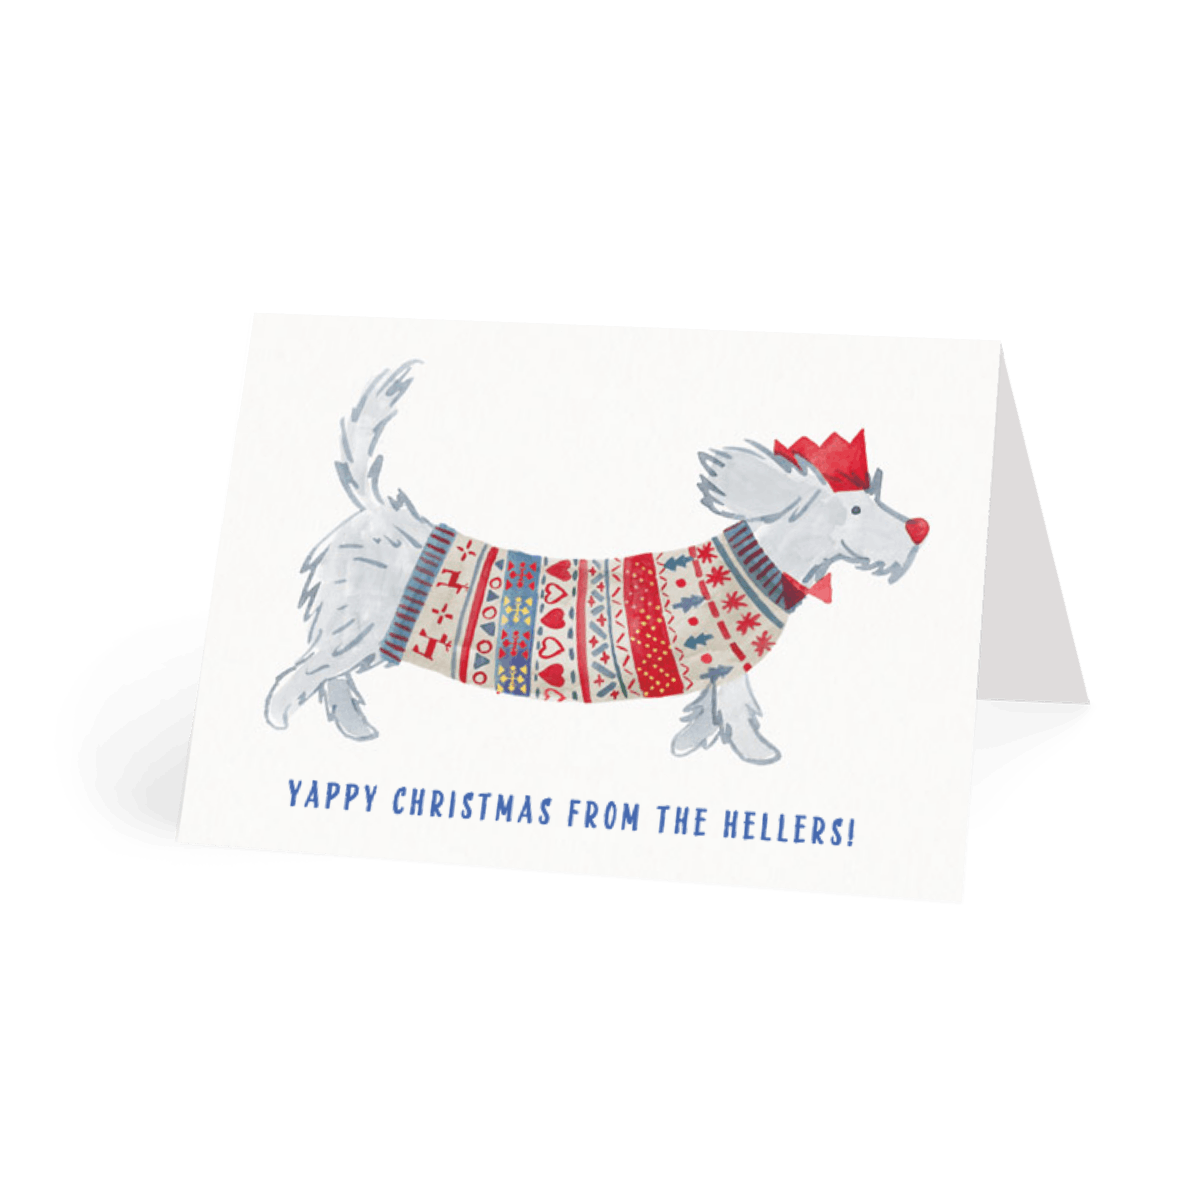 Https%3a%2f%2fwww.papier.com%2fproduct image%2f11963%2f14%2fchristmas dog 3019 front 1545054163.png?ixlib=rb 1.1